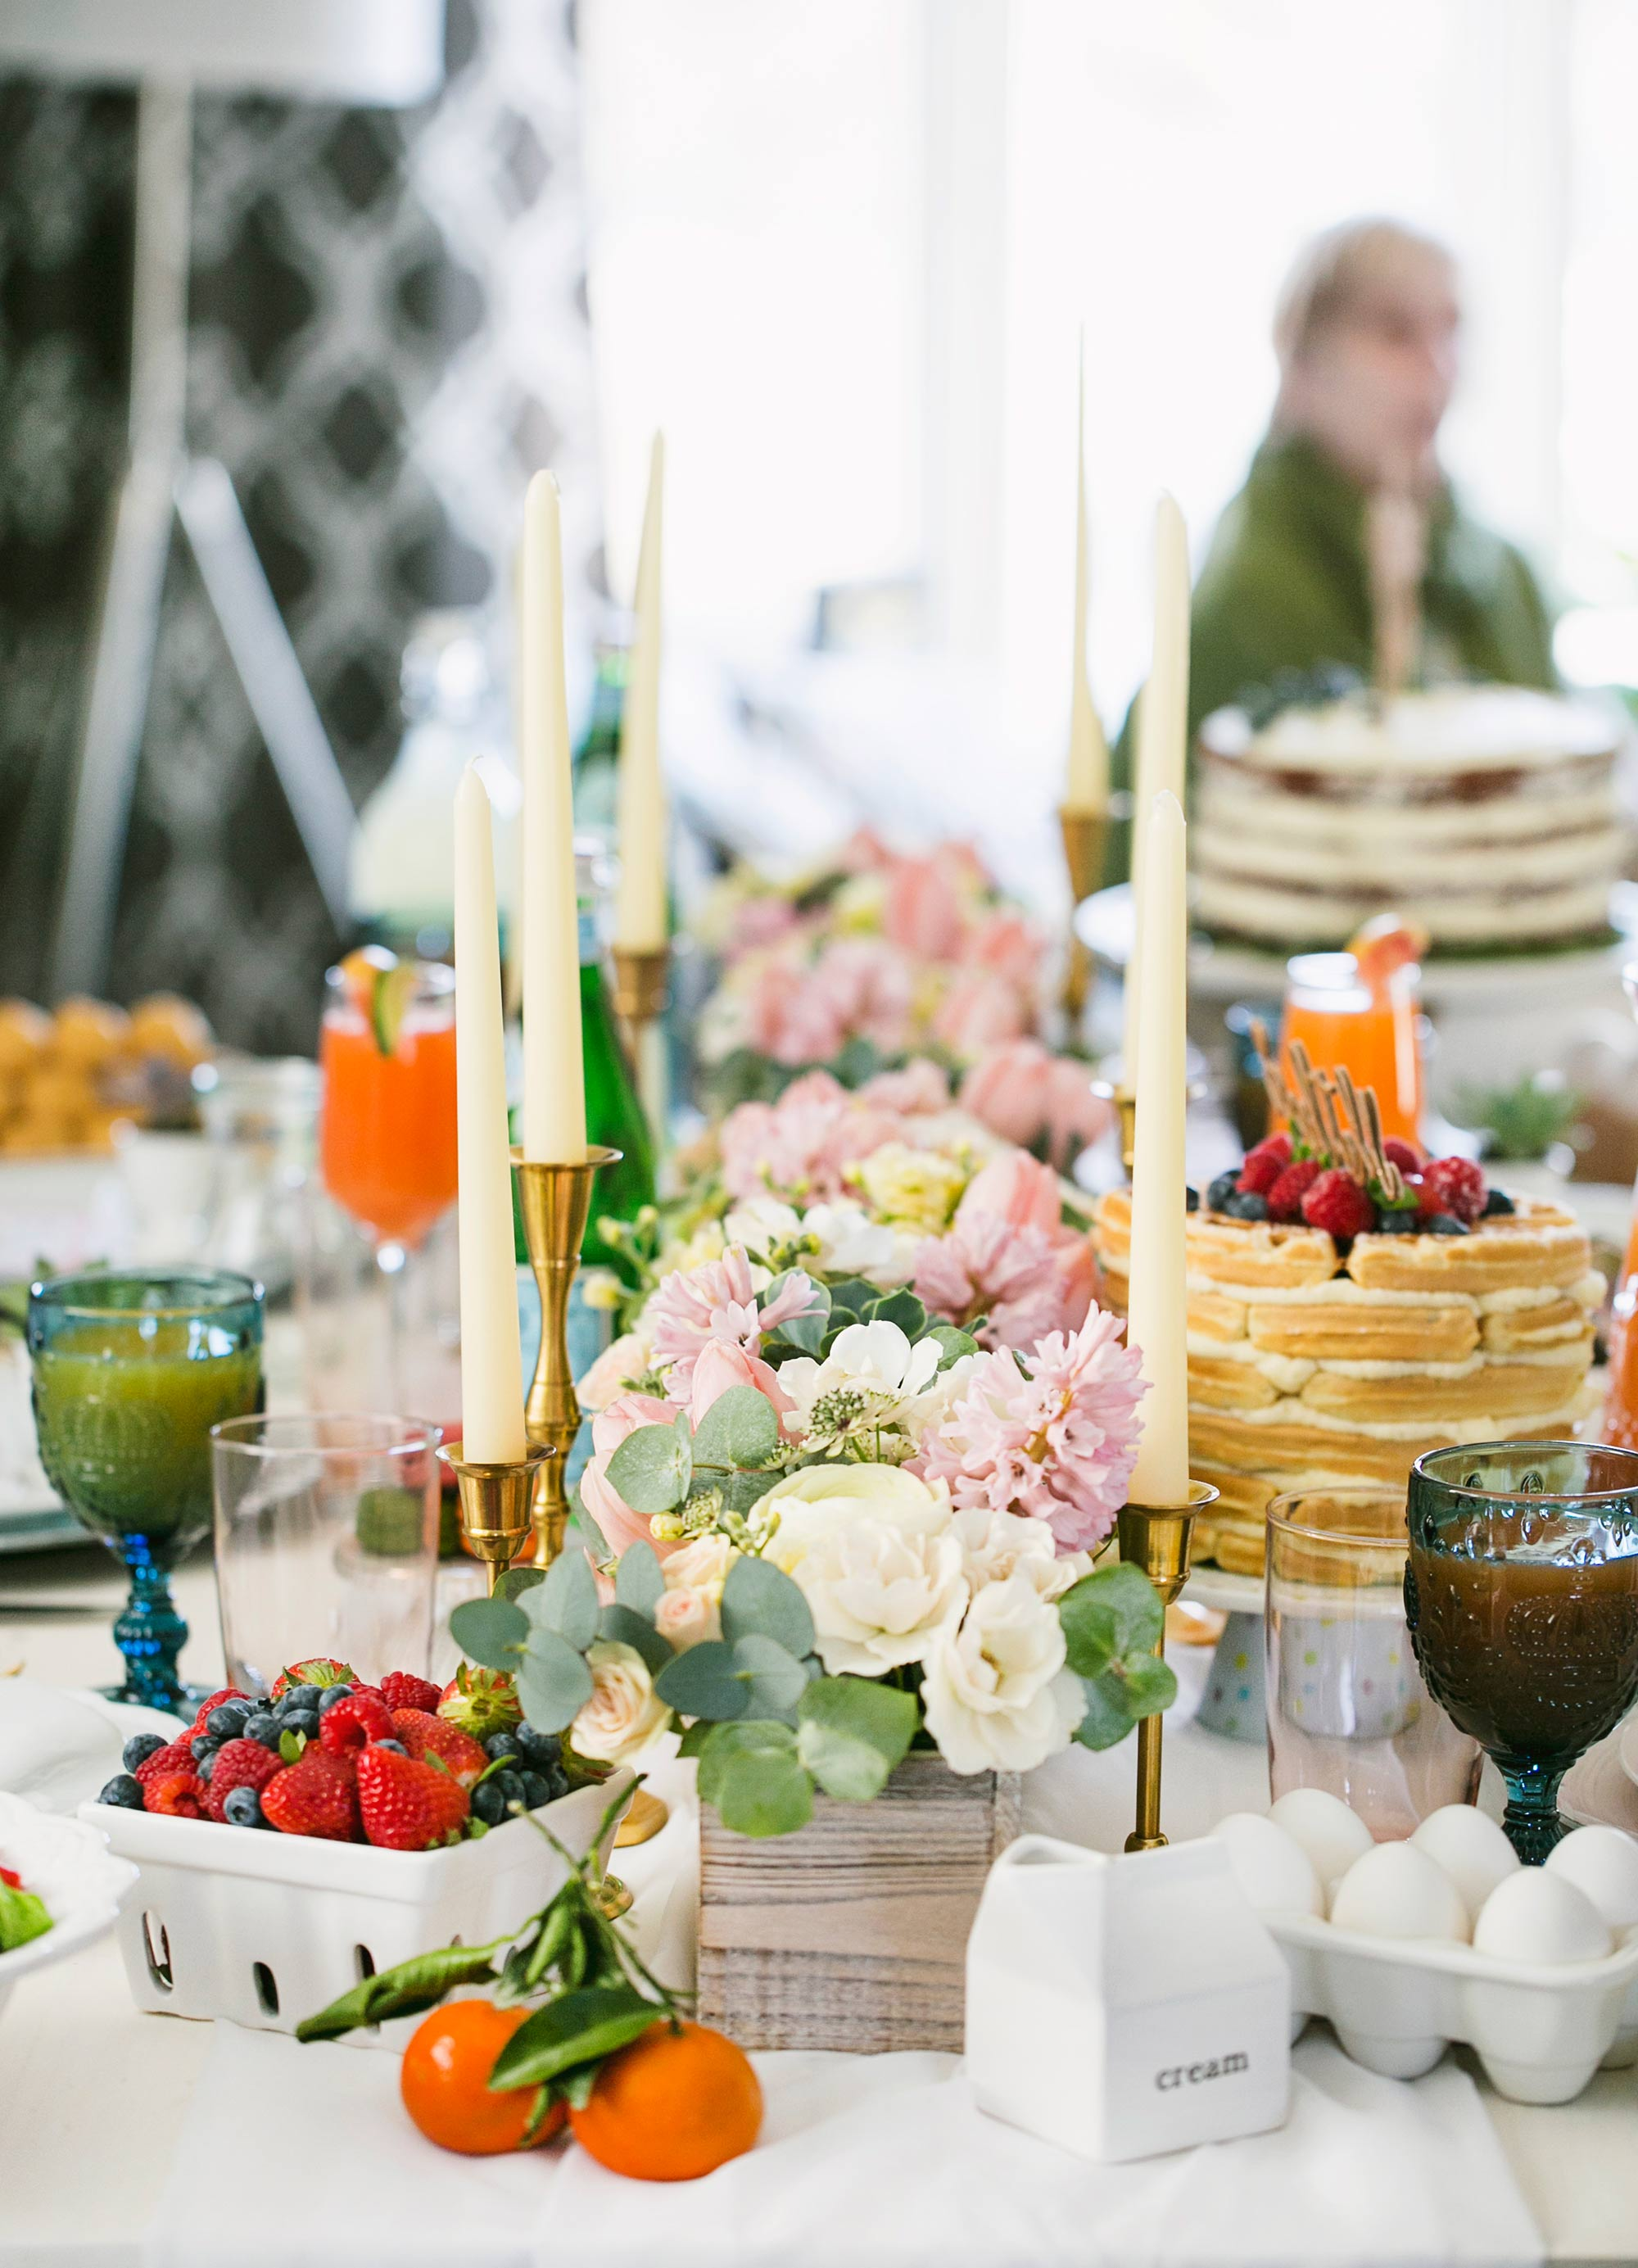 Tips for Designing Your Table for Mother's Day